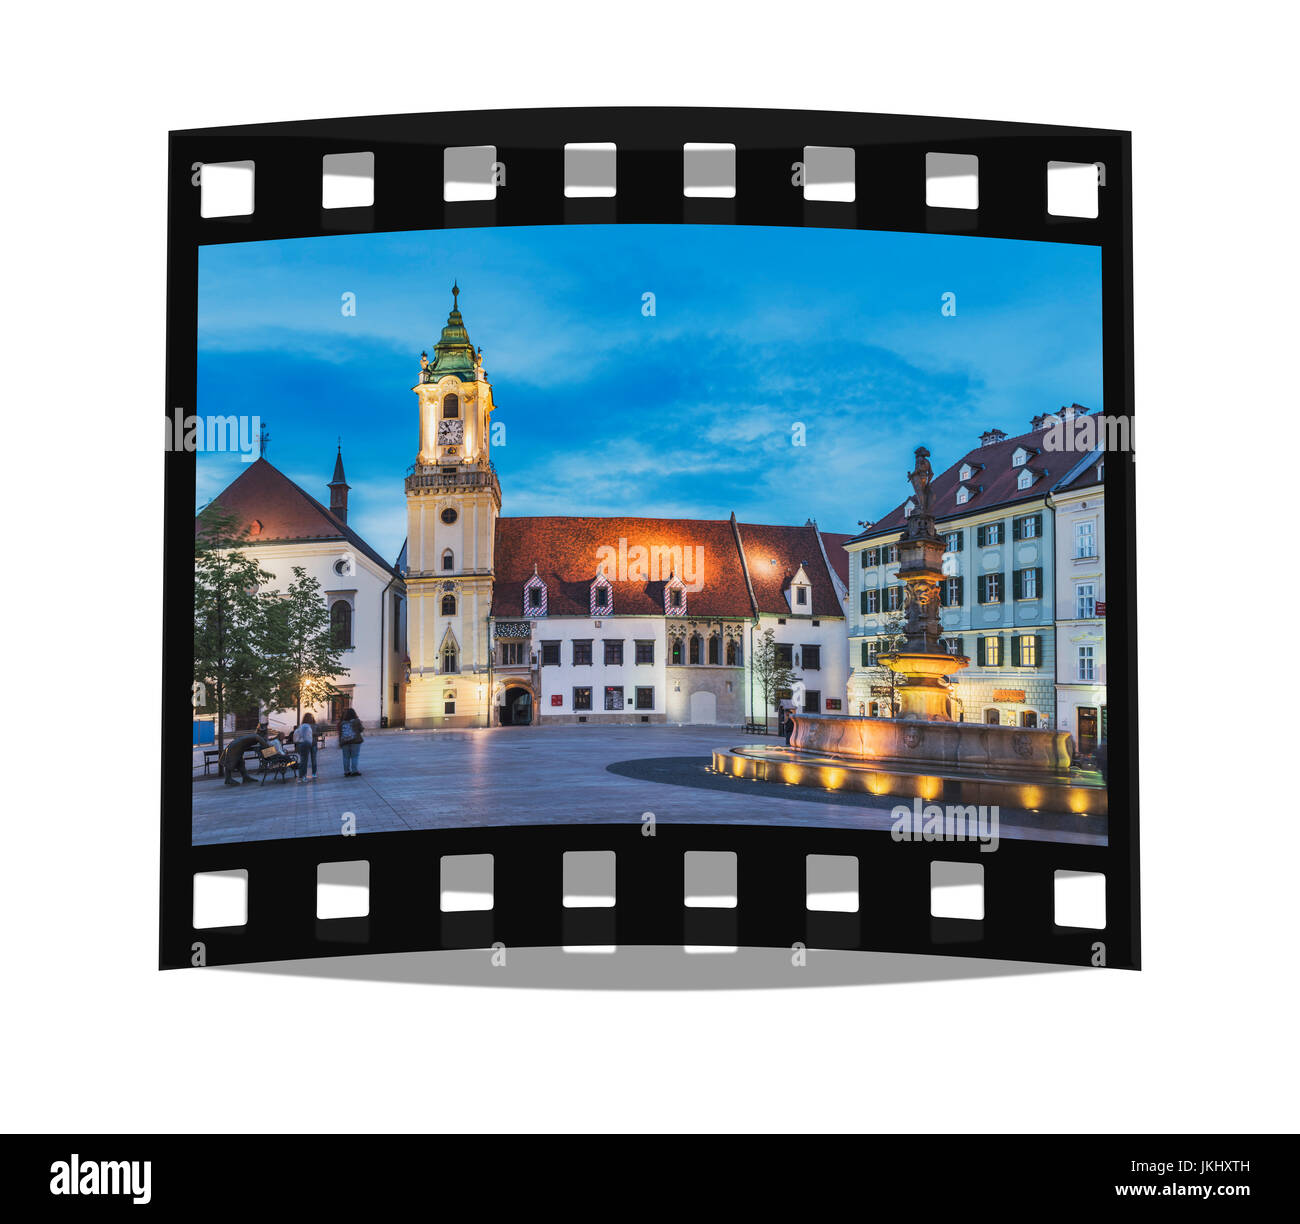 The old town hall is one of the oldest buildings of Bratislava built of stone. It is located at the Main Square - Stock Image